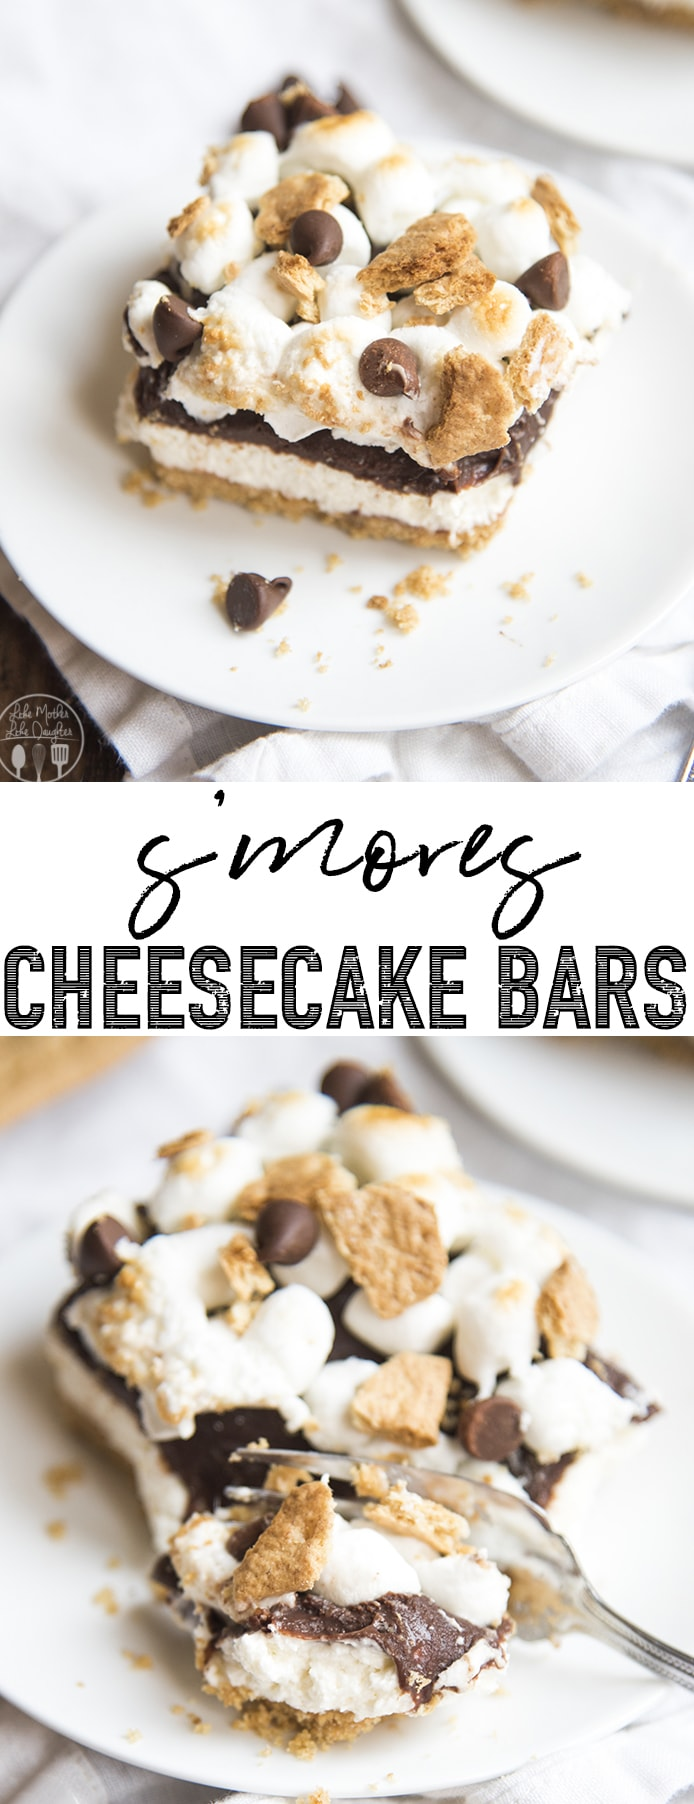 S'mores Cheesecake Bars are delicious no bake cheesecake bars topped with chocolate ganache and toasted marshmallows, for all the great flavors of s'mores in the form of cheesecake!